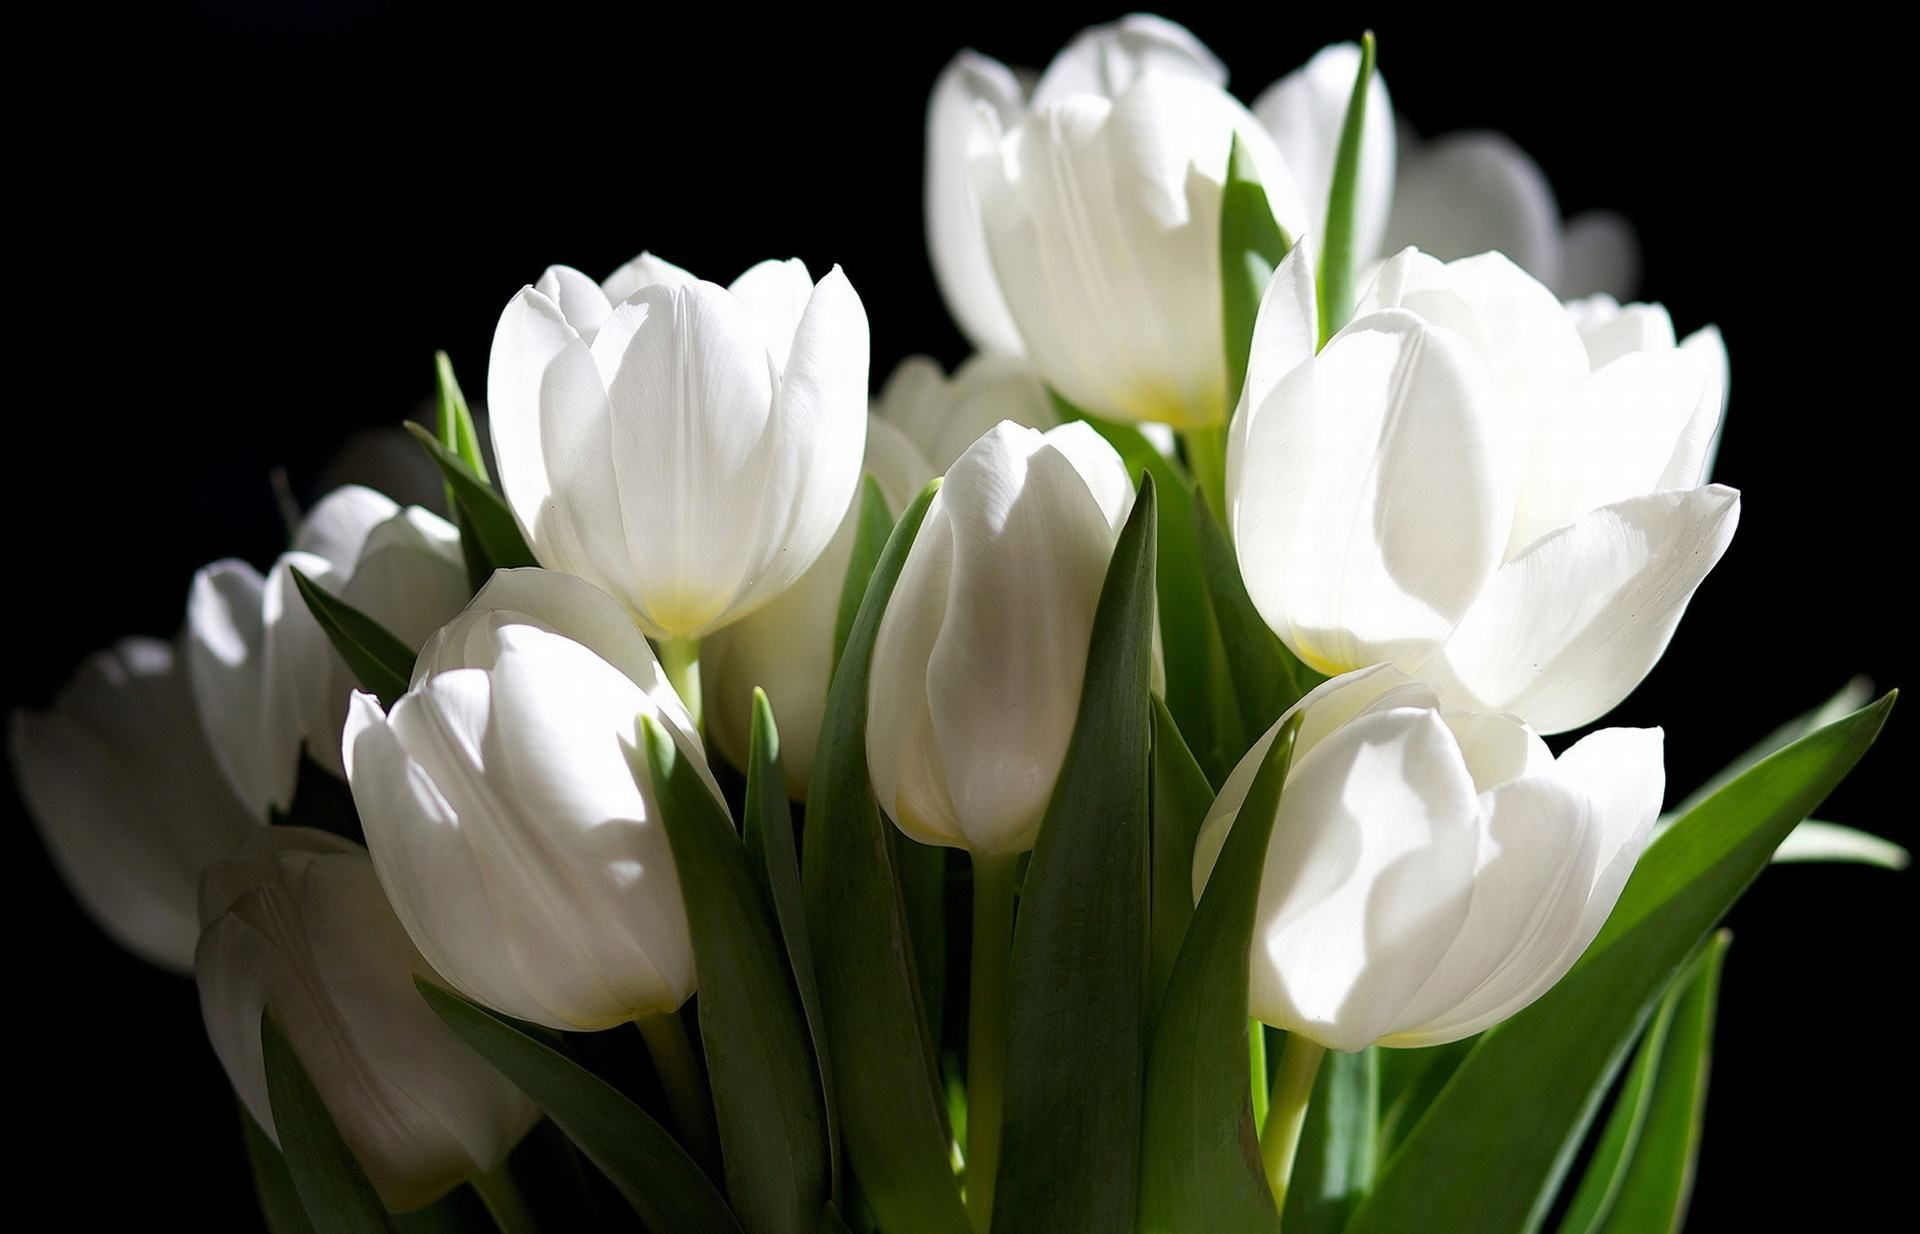 White flowers 10 flowers gallery flower pinterest white white flowers 10 flowers gallery izmirmasajfo